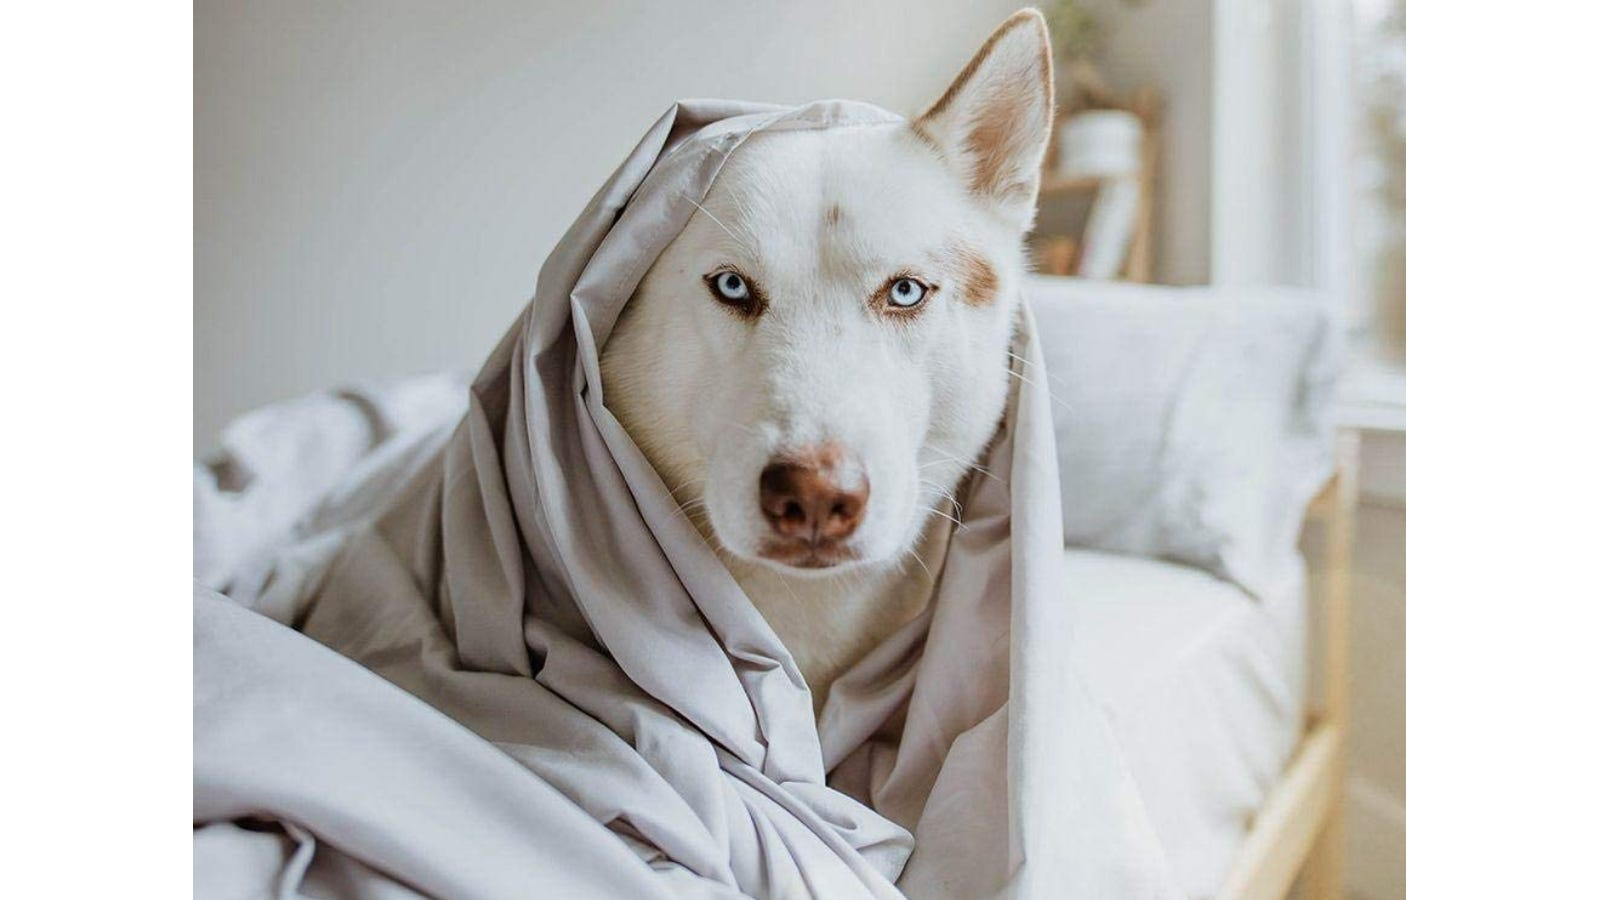 A white husky wrapped in grey sheets and laying on a bed.